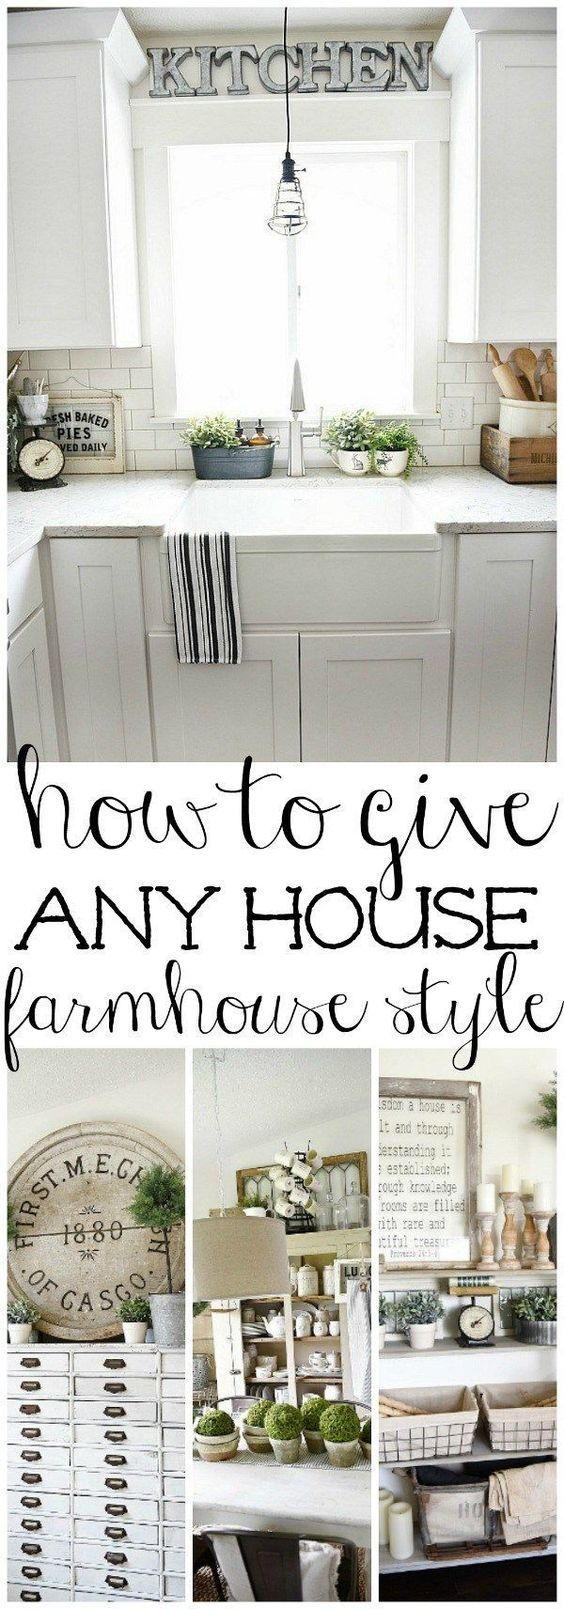 cool How To Give Any House Farmhouse Style - by http://www.coolhome-decorationsideas.xyz/kitchen-decor-designs/how-to-give-any-house-farmhouse-style/